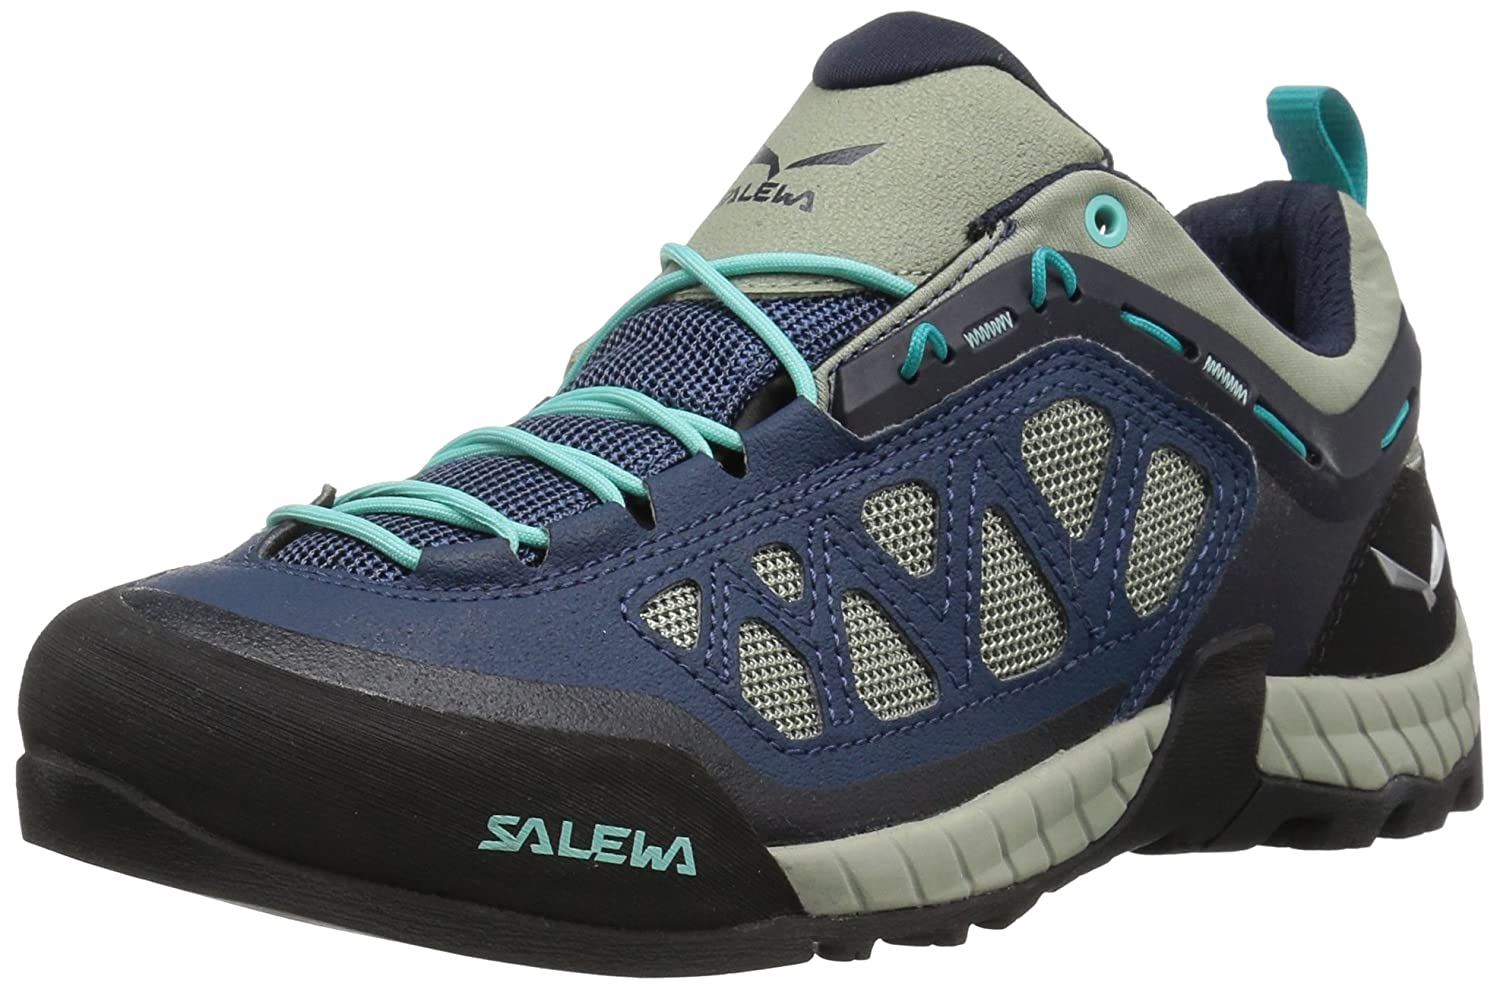 Salewa Women's Firetail 3 Approach Shoes | Approach, Hiking, Alpine Climbing | Vibram Sole, Climbing Lacing, Breathable Upper B01HTN8DUE 6.5 B(M) US|Dark Denim/Aruba Blue